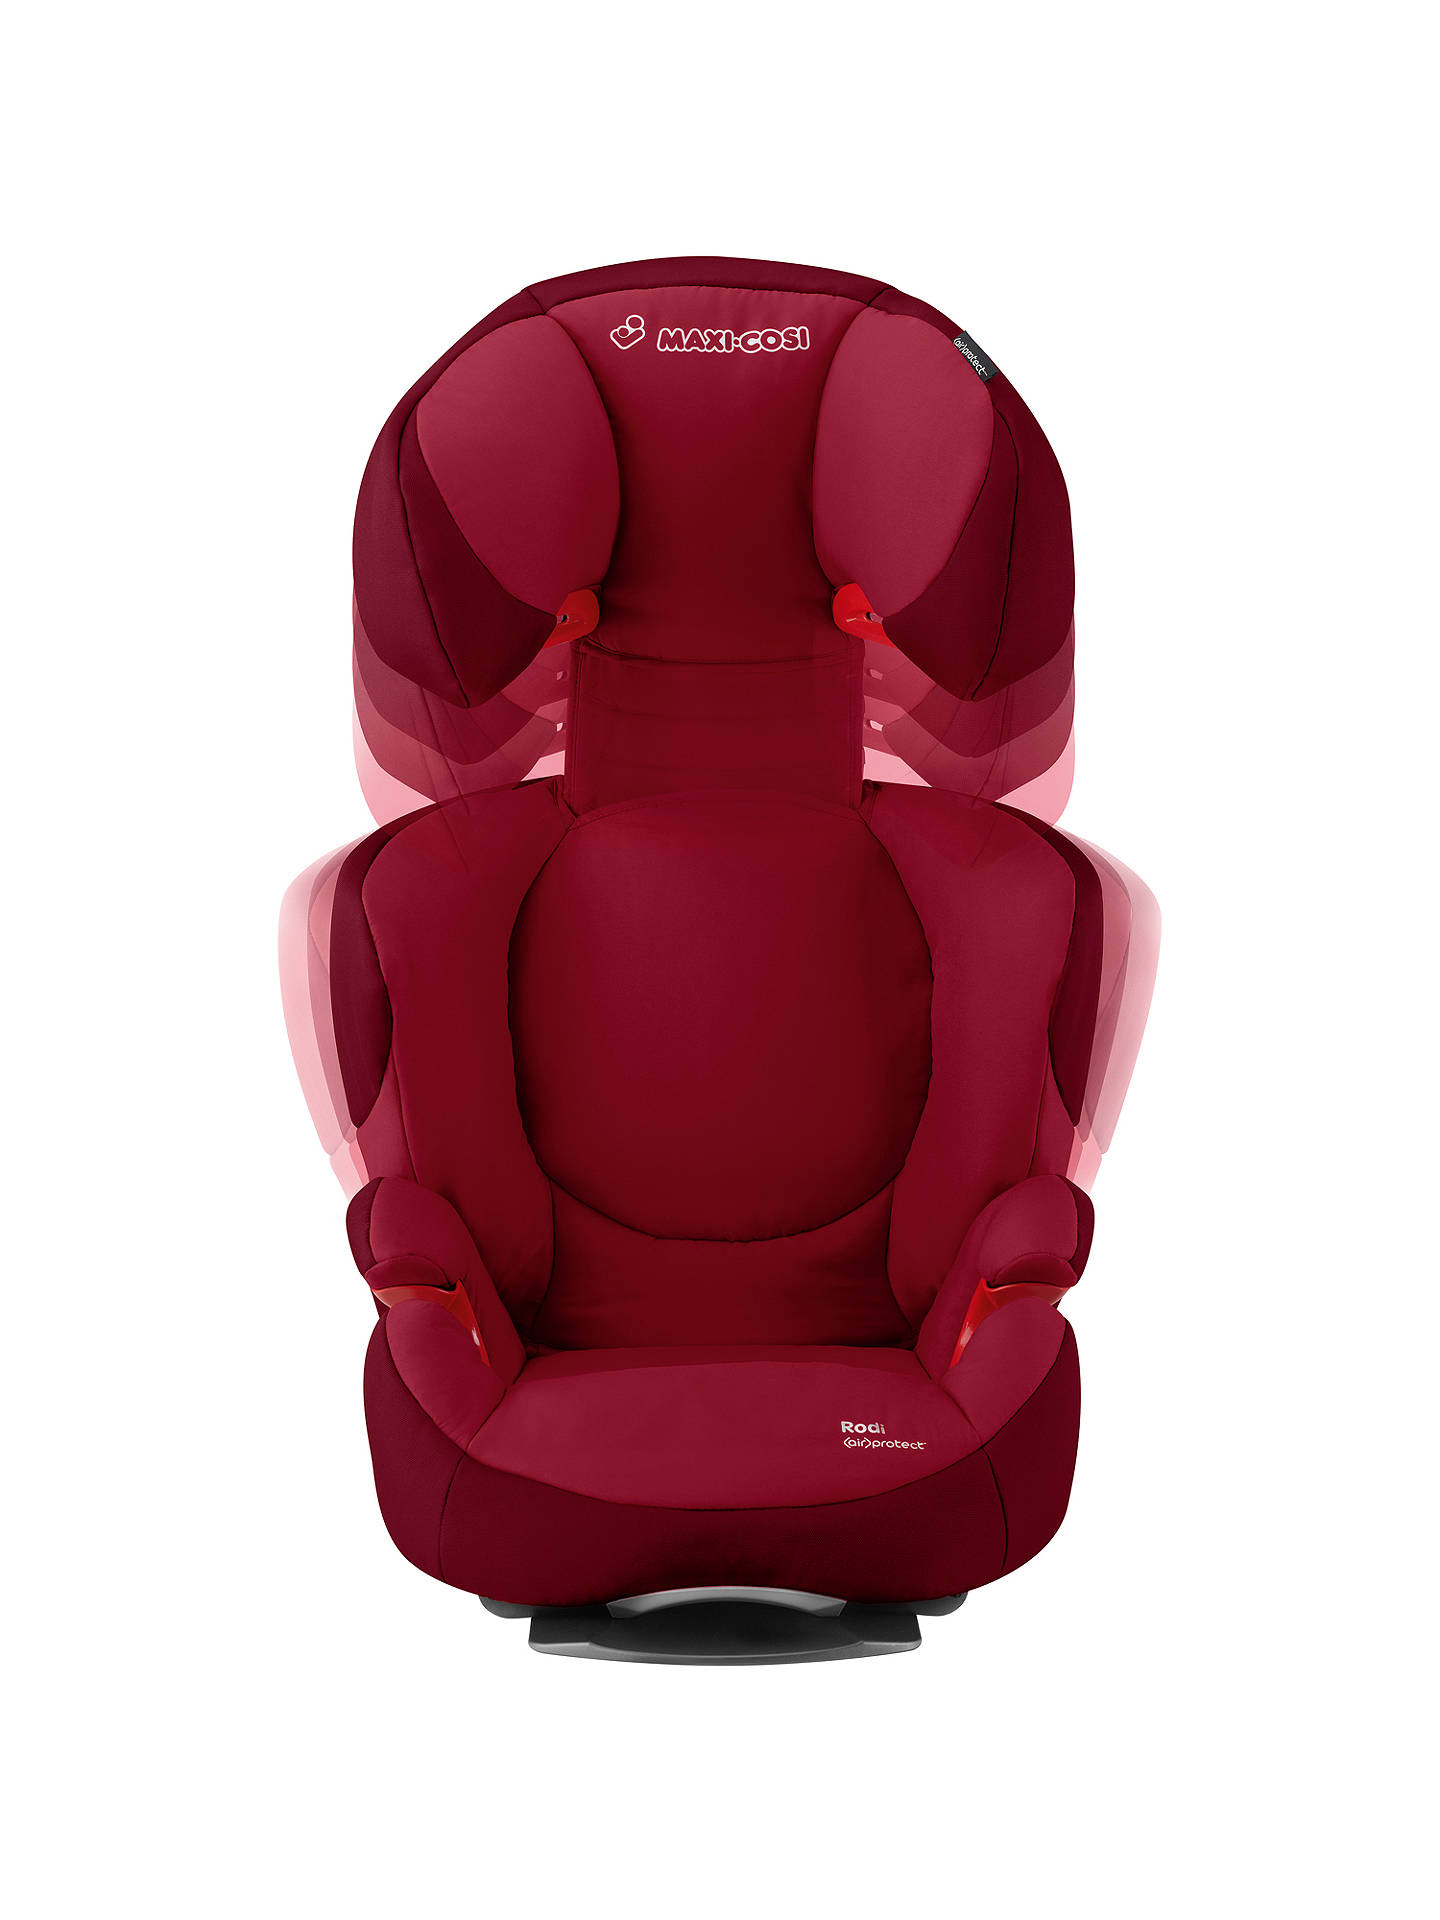 BuyMaxi-Cosi Rodi Air Protect Group 2/3 Car Seat, Robin Red Online at johnlewis.com